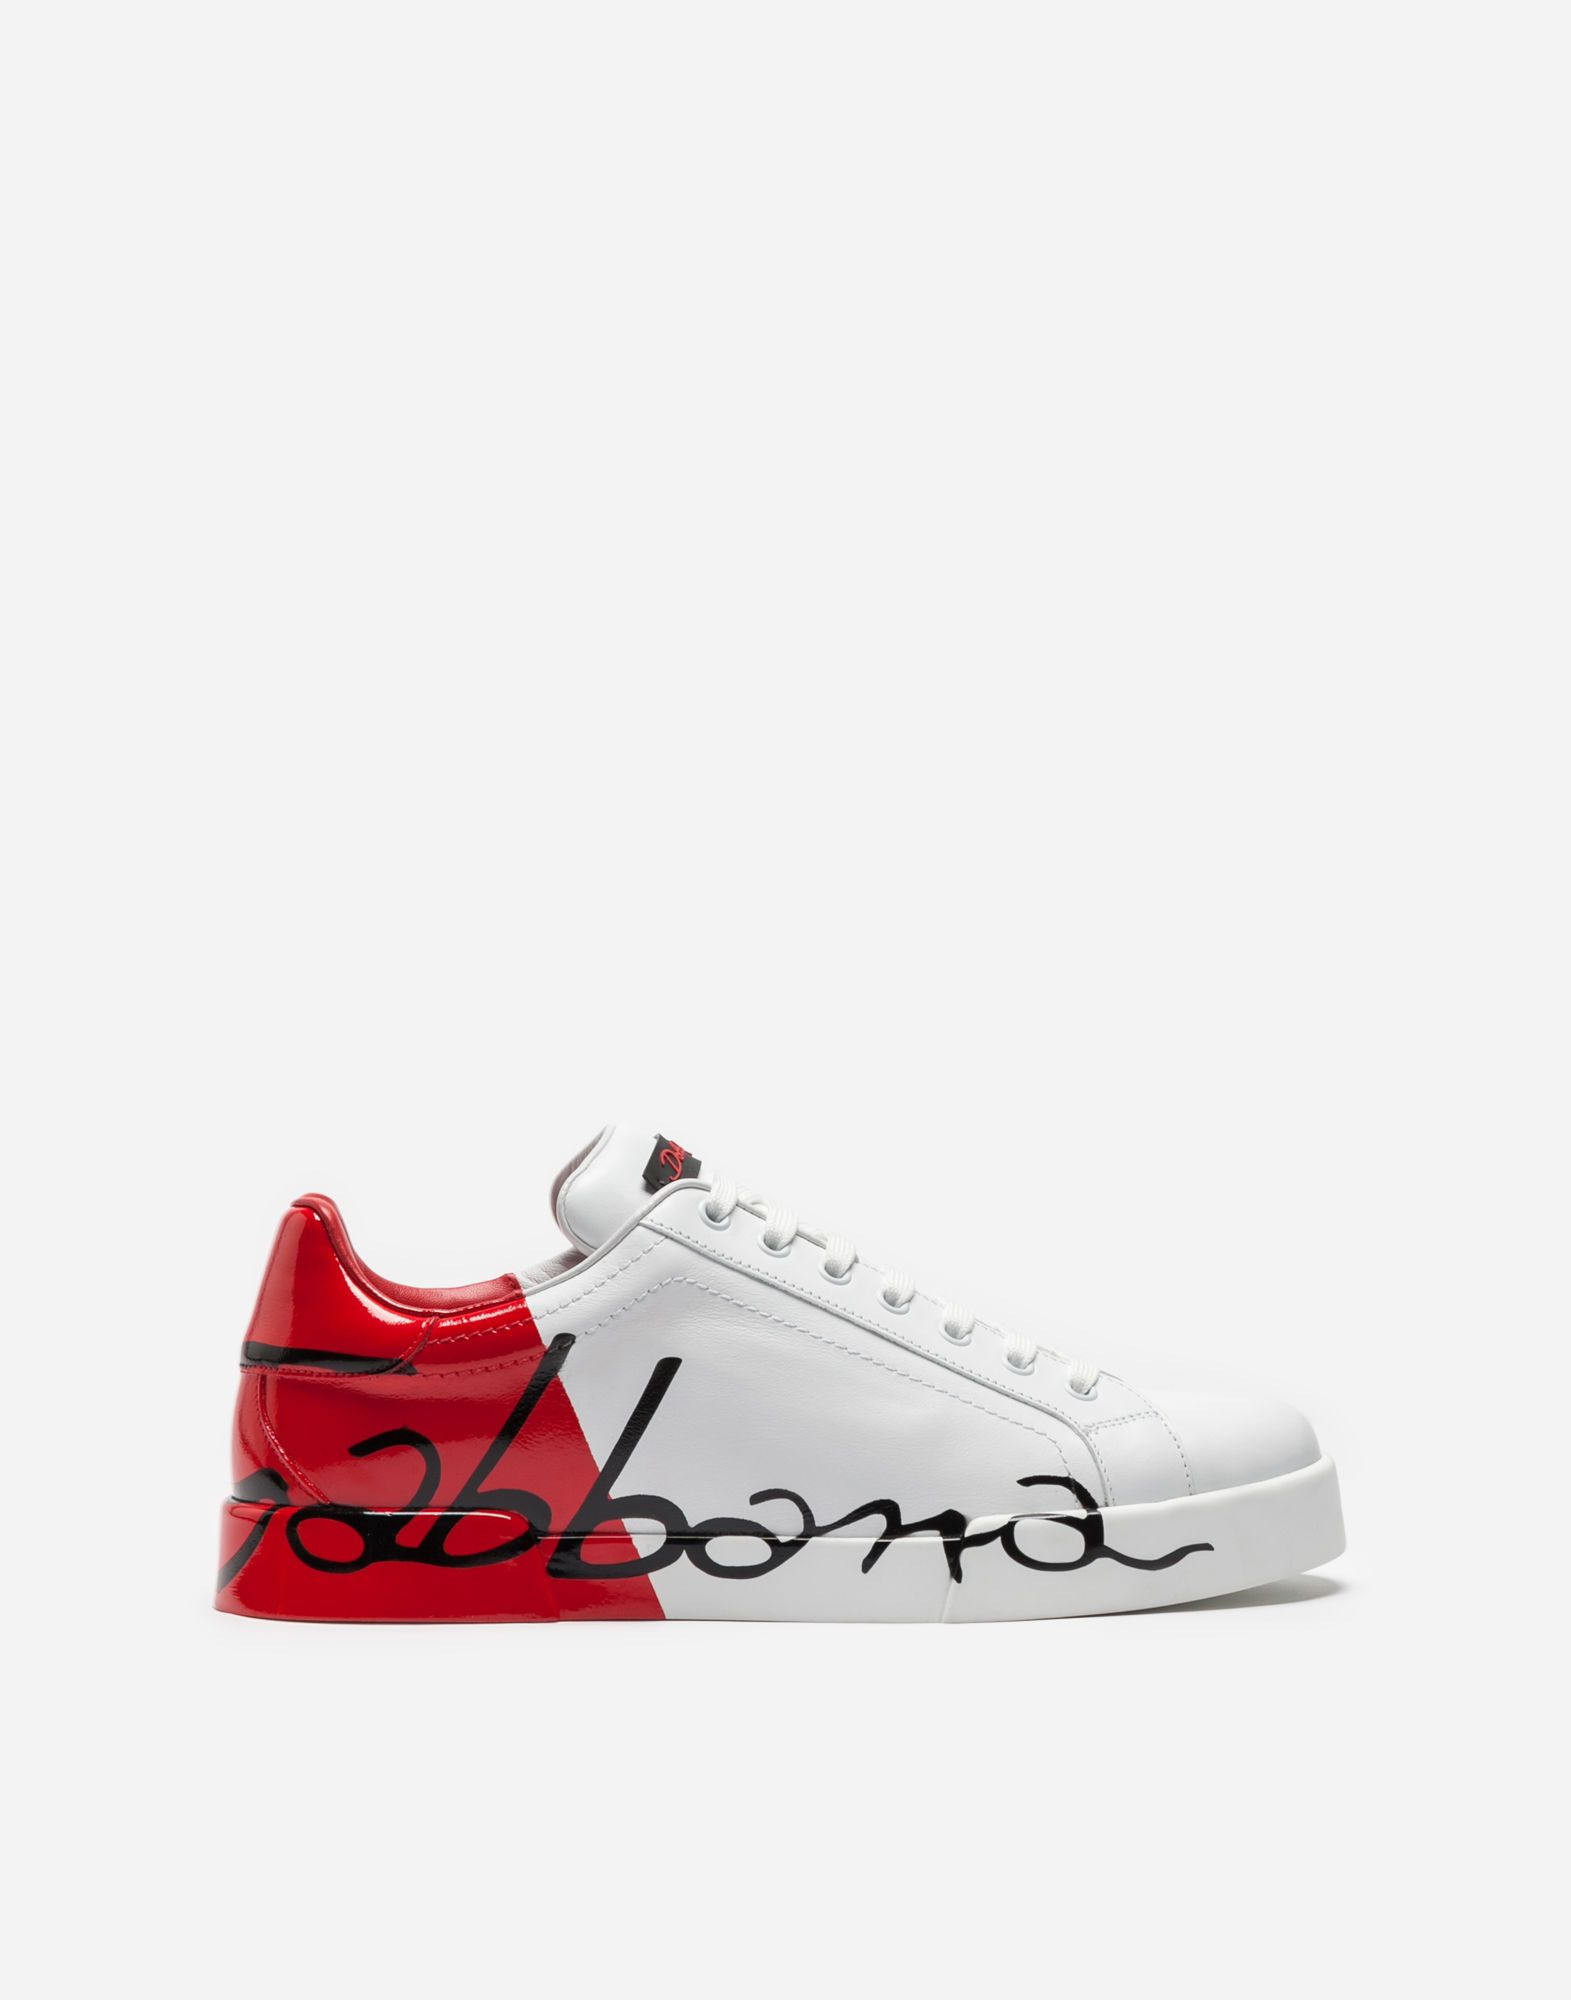 5d79c00853930 DOLCE   GABBANA PORTOFINO SNEAKERS IN LEATHER AND PATENT.  dolcegabbana   shoes